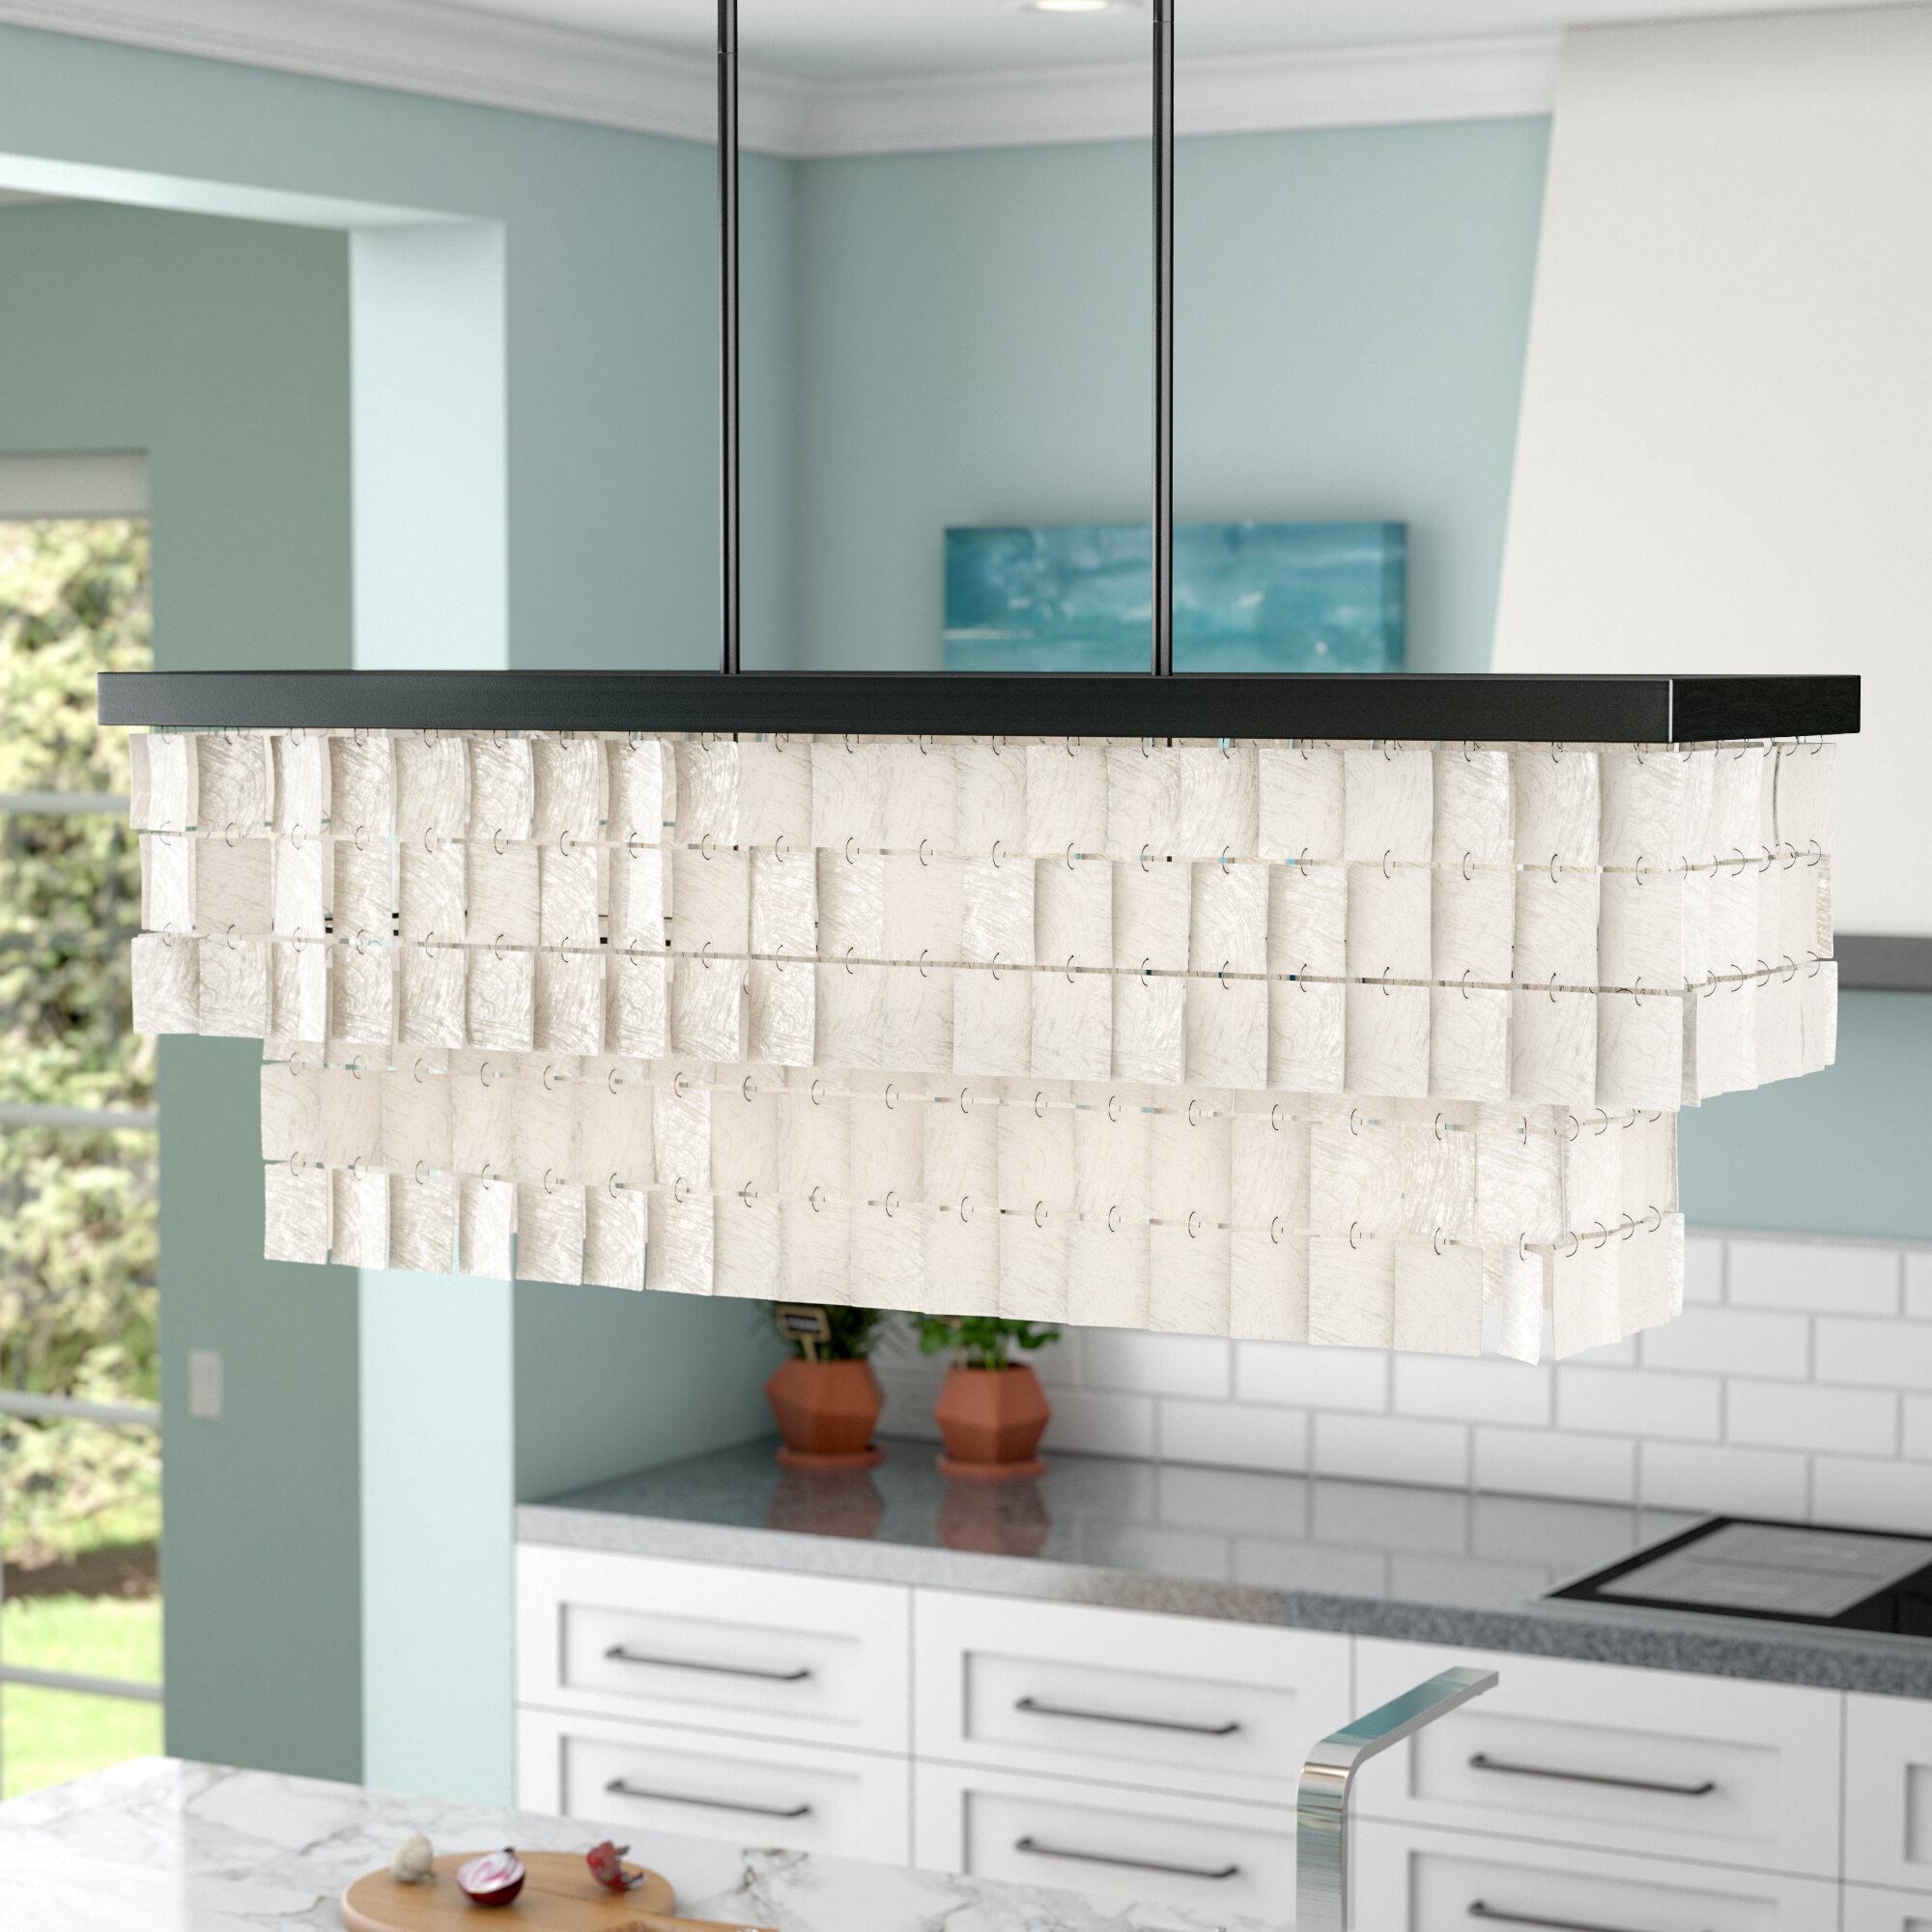 ideas steel kitchen marvelous looks island tiles blue brings silver backsplash decoration sink cabinet ceramics for beautiful ikea wooden with teal marble countertop and white